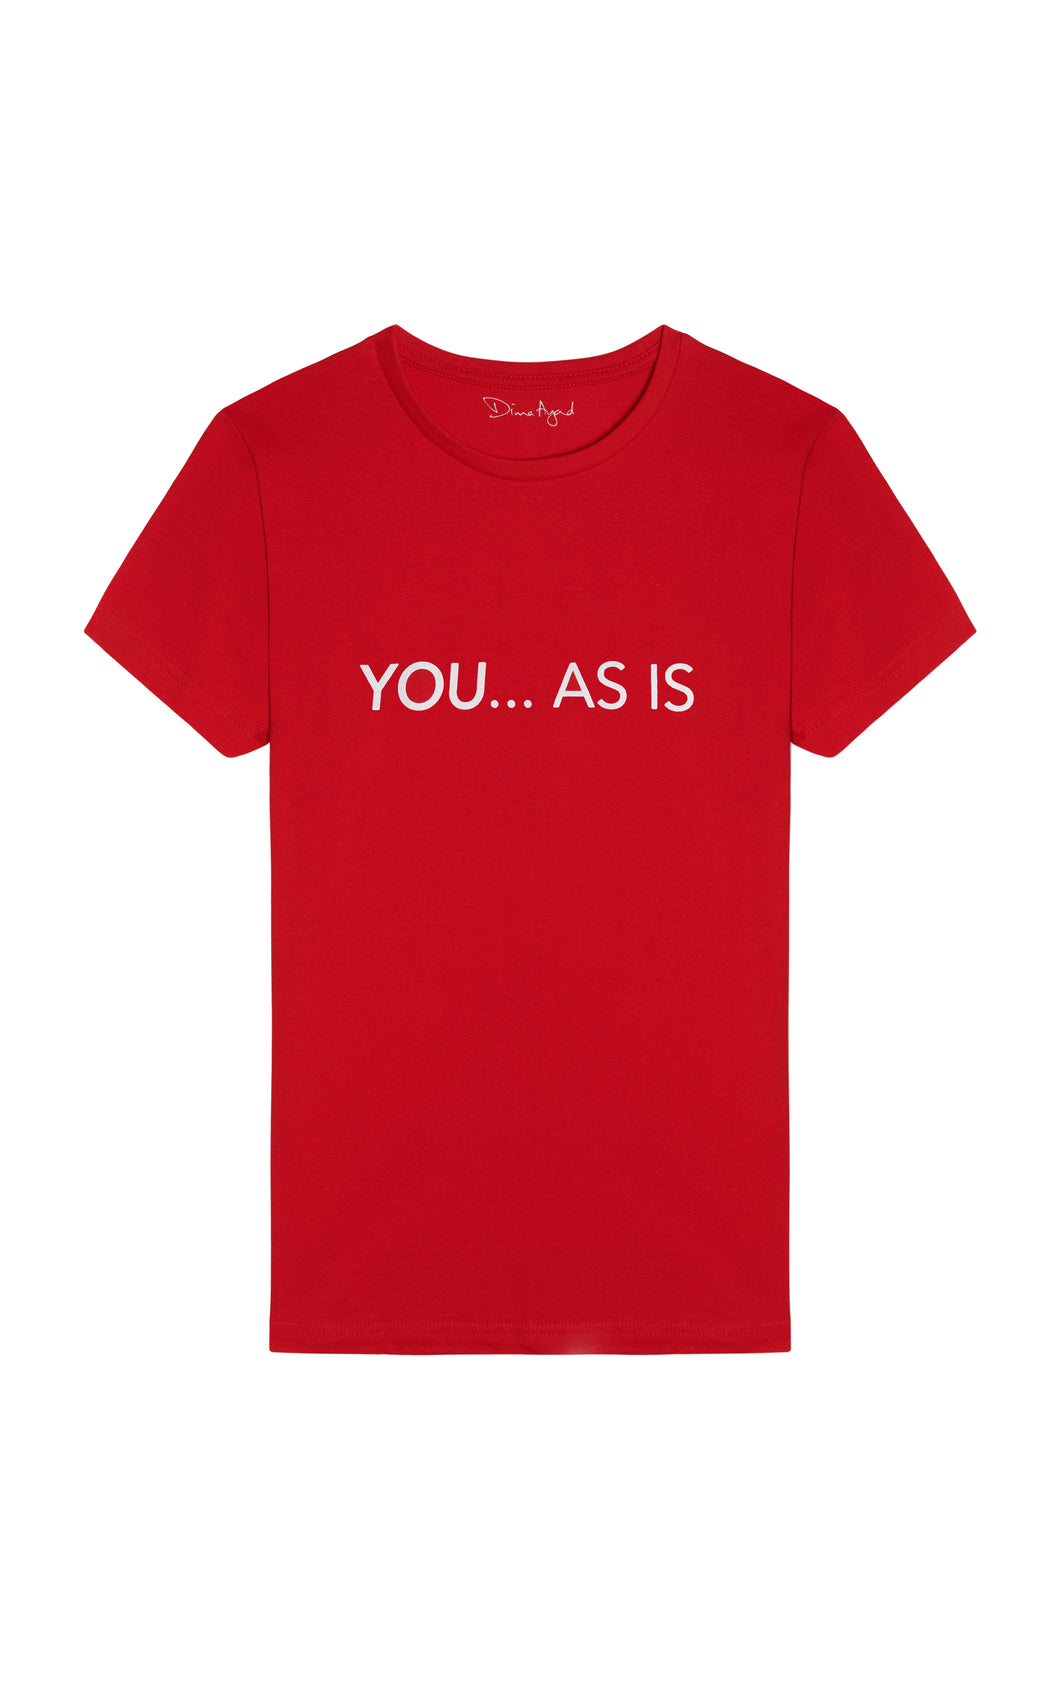 YOU...AS IS Red T-shirt with White Text, English